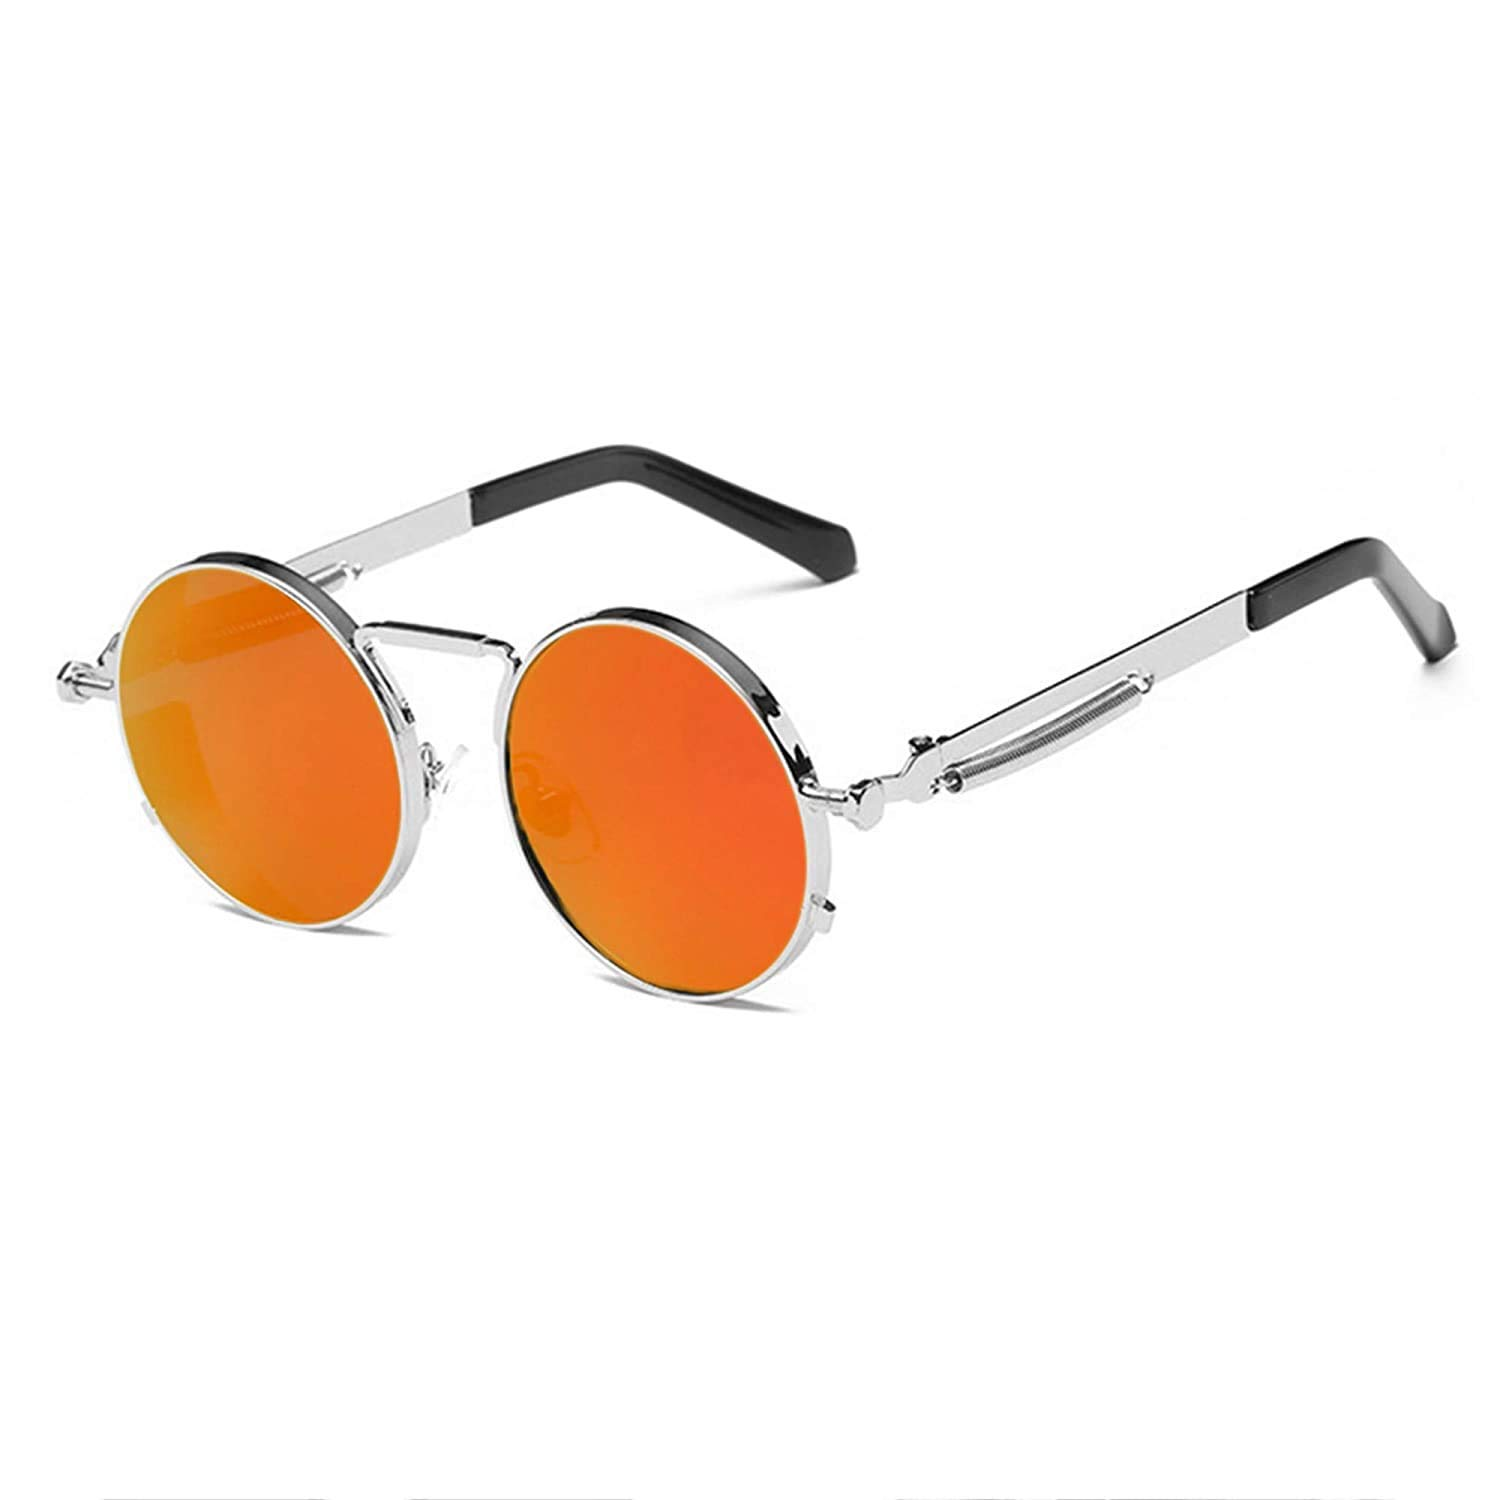 Arzonai Orange Steampunk Metal Sunglasses For Men And Women